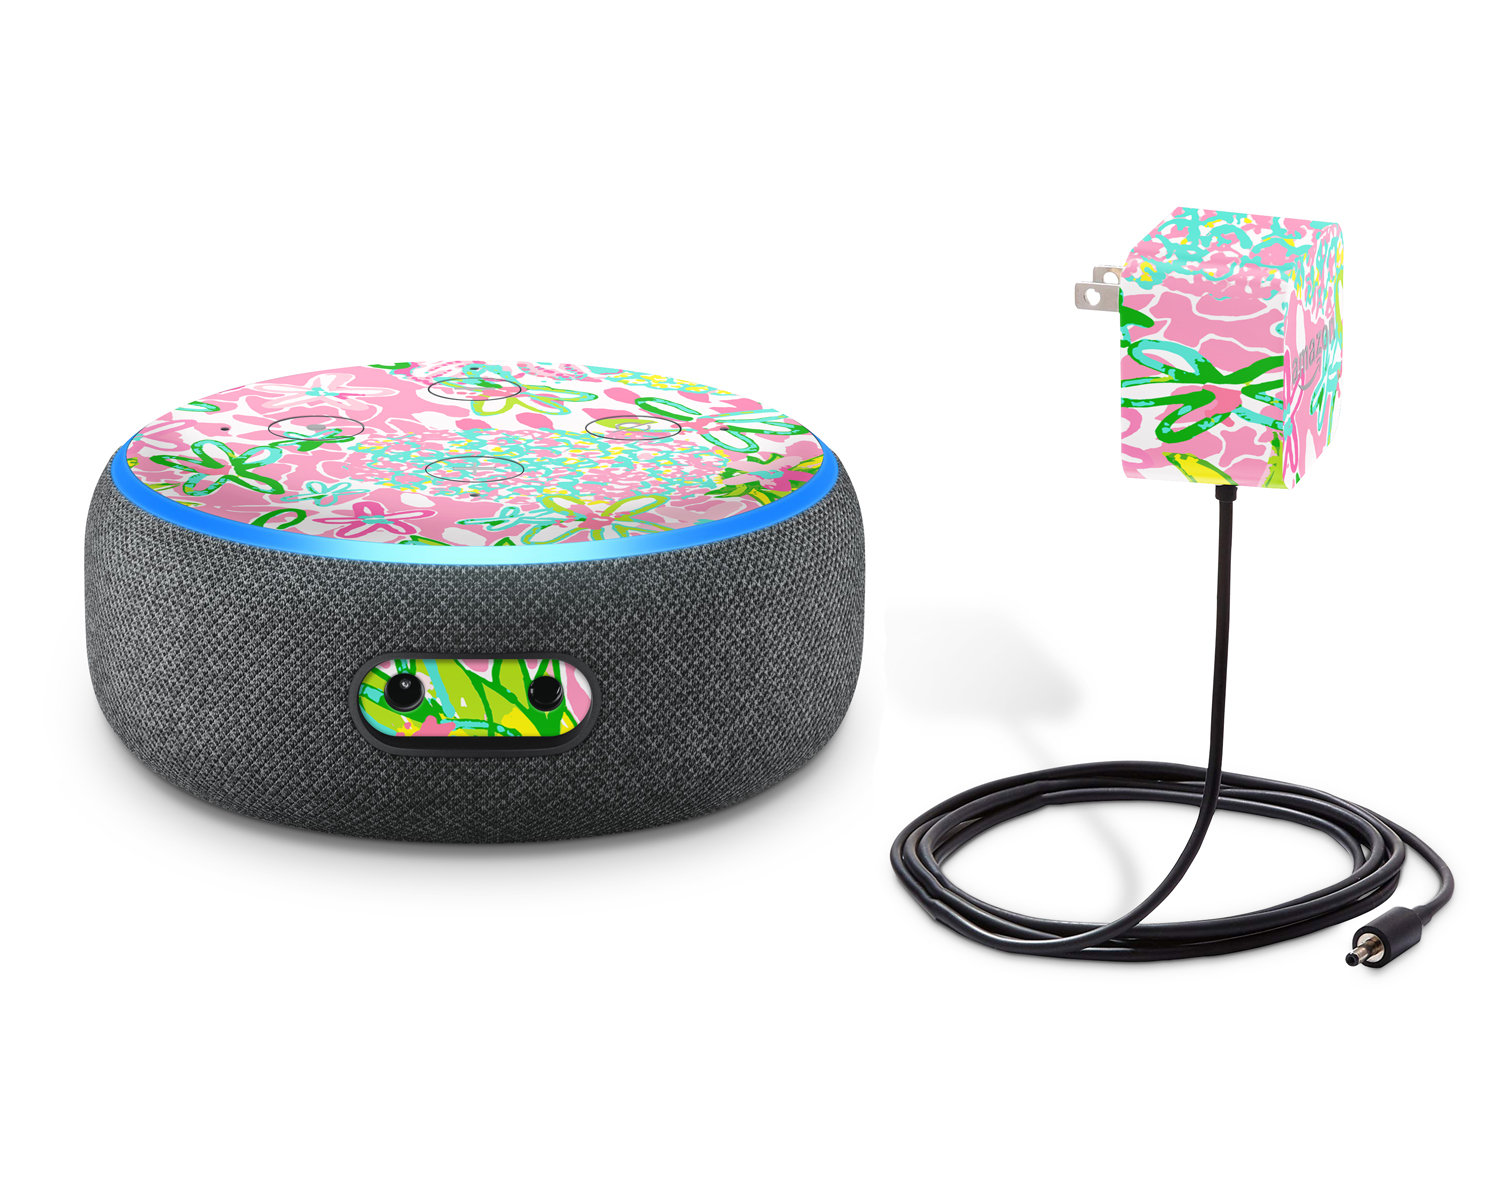 Preppy Pineapple Decal for Amazon Echo Dot 3rd Generation | Alexa skin  sticker | Glitter or Glow In The Dark Vinyl | RTS Ready To Ship